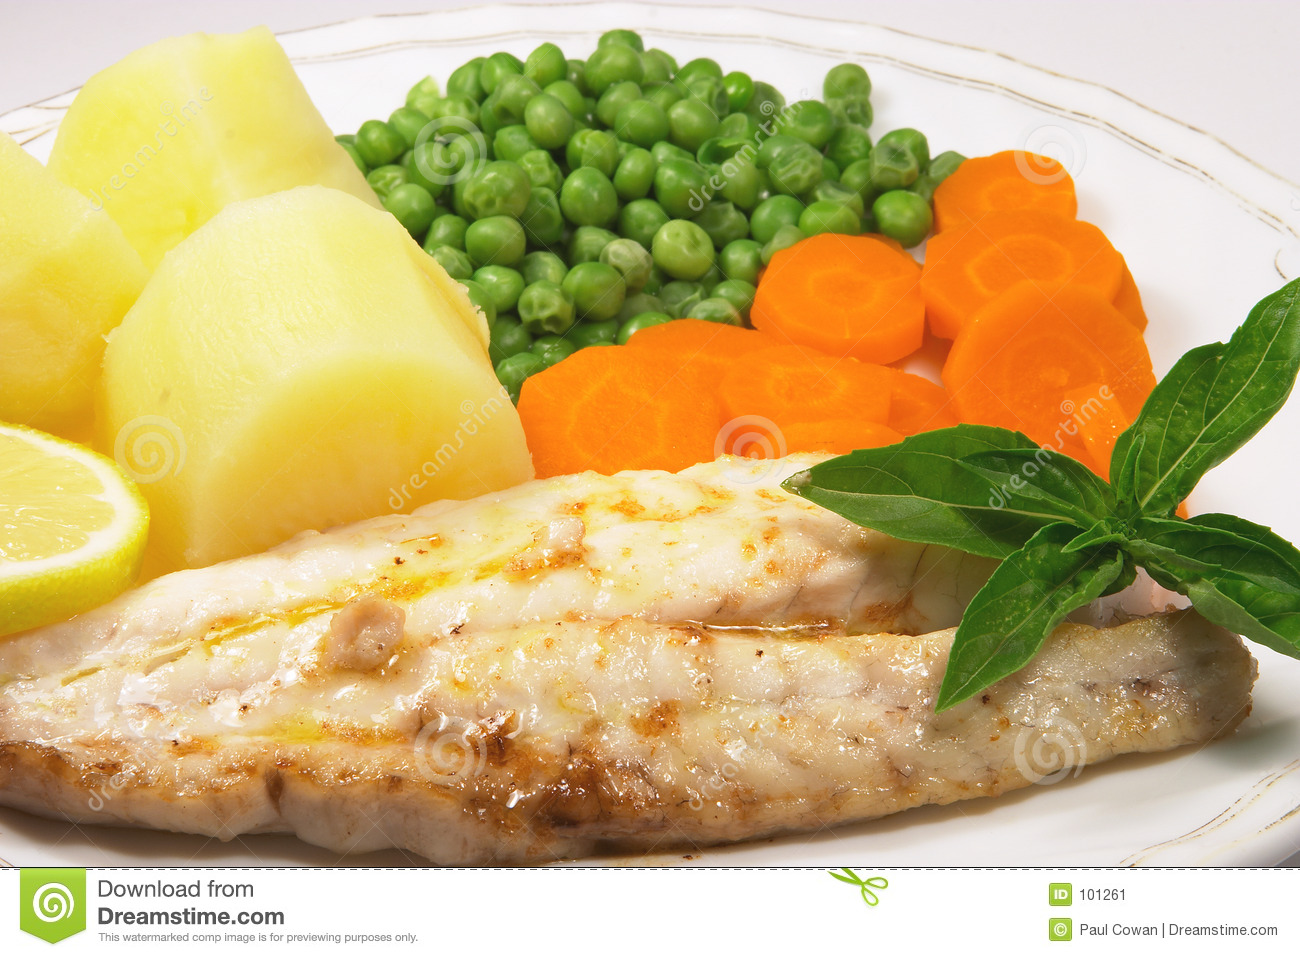 Grilled chicken dinner clipart clipart suggest for Healthy fish dinner